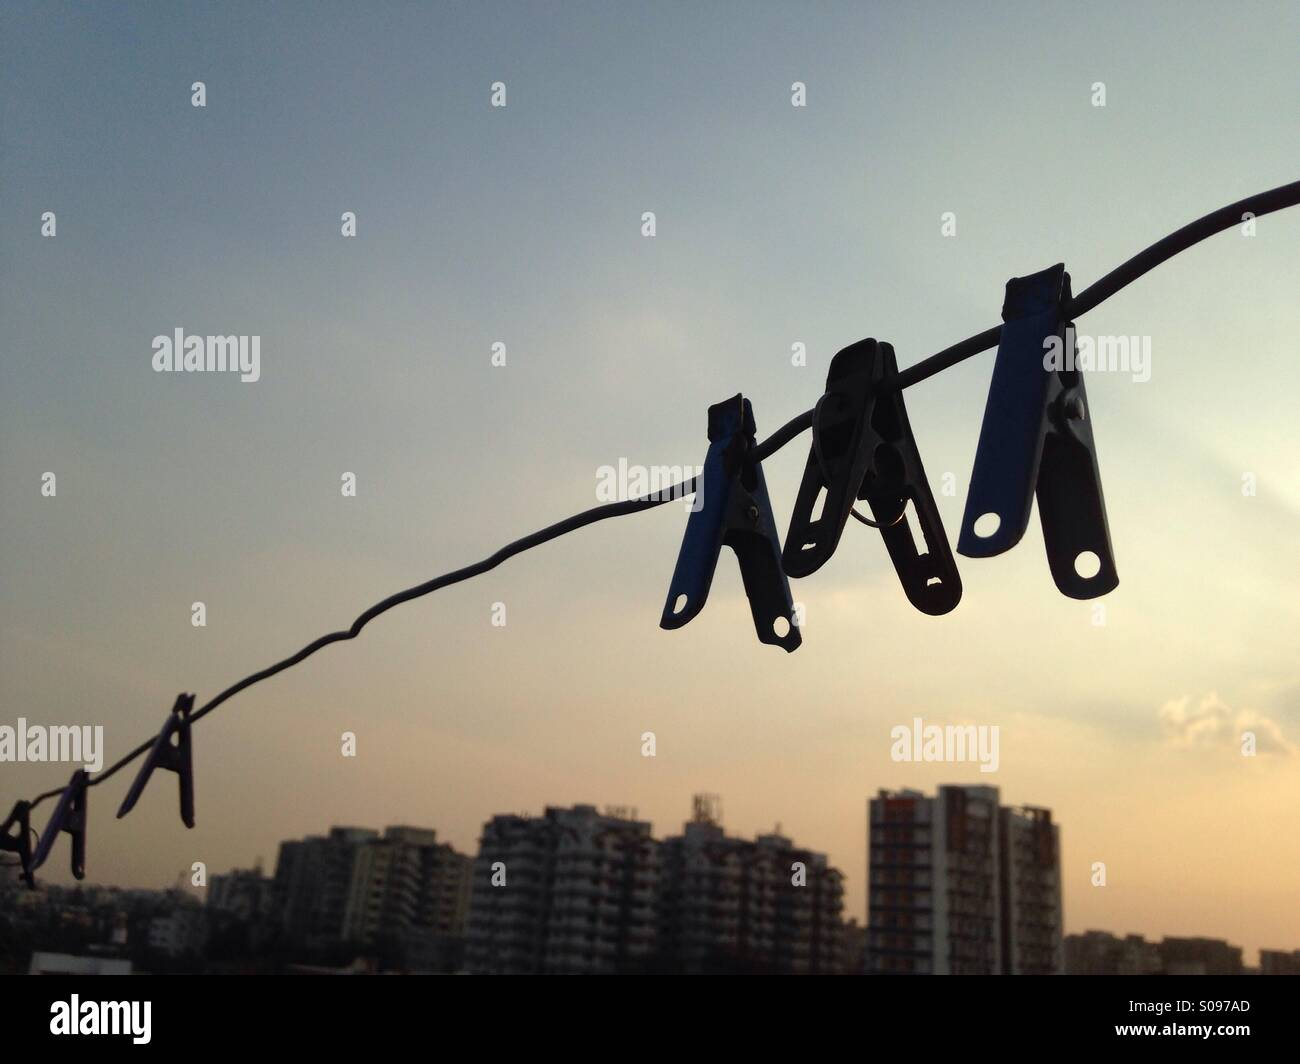 Hanging clips - Stock Image